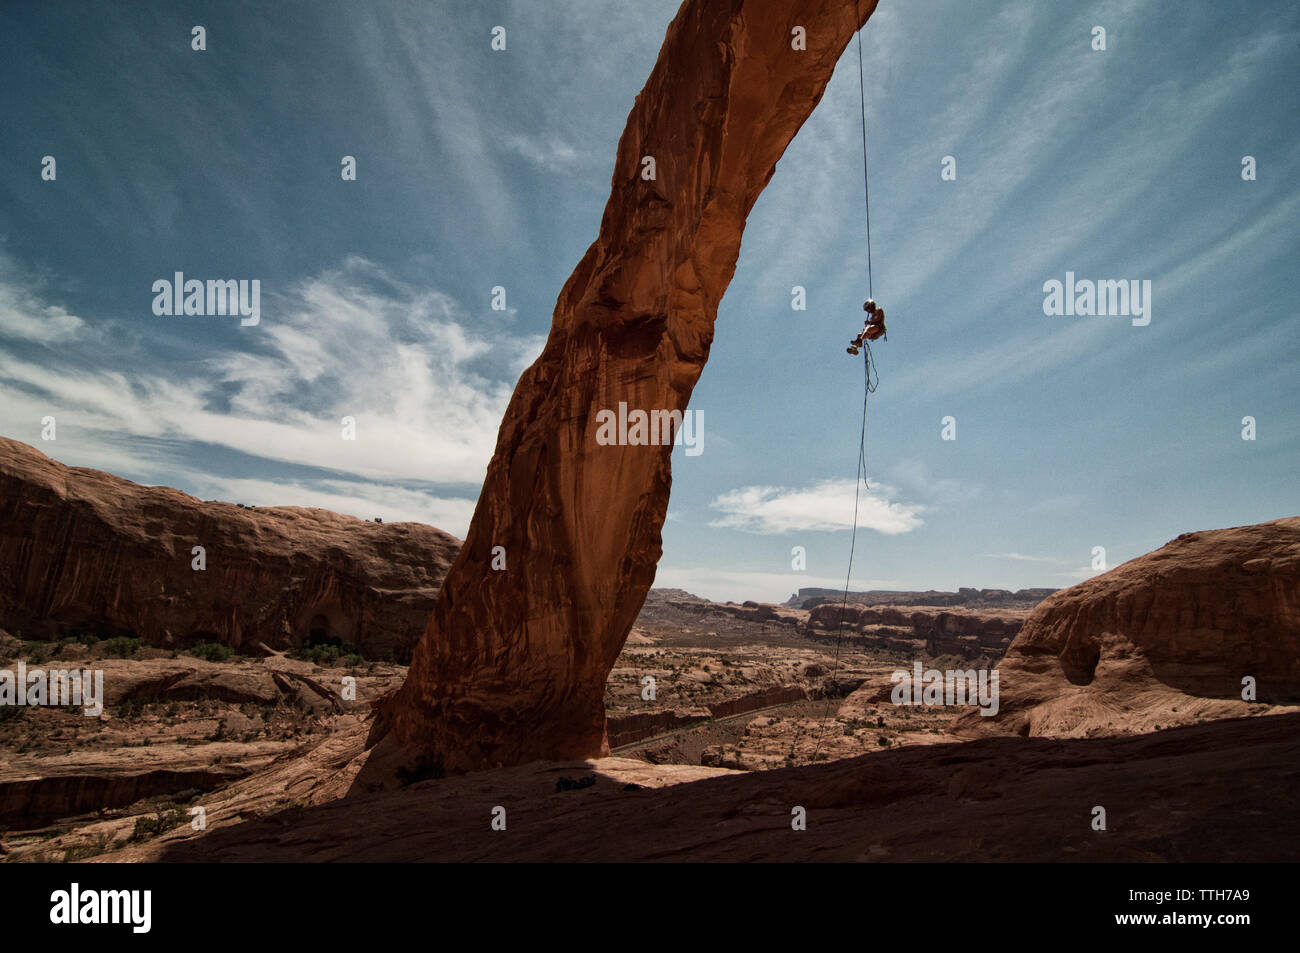 Landscape image of figure rappelling down Corona Arch - Stock Image